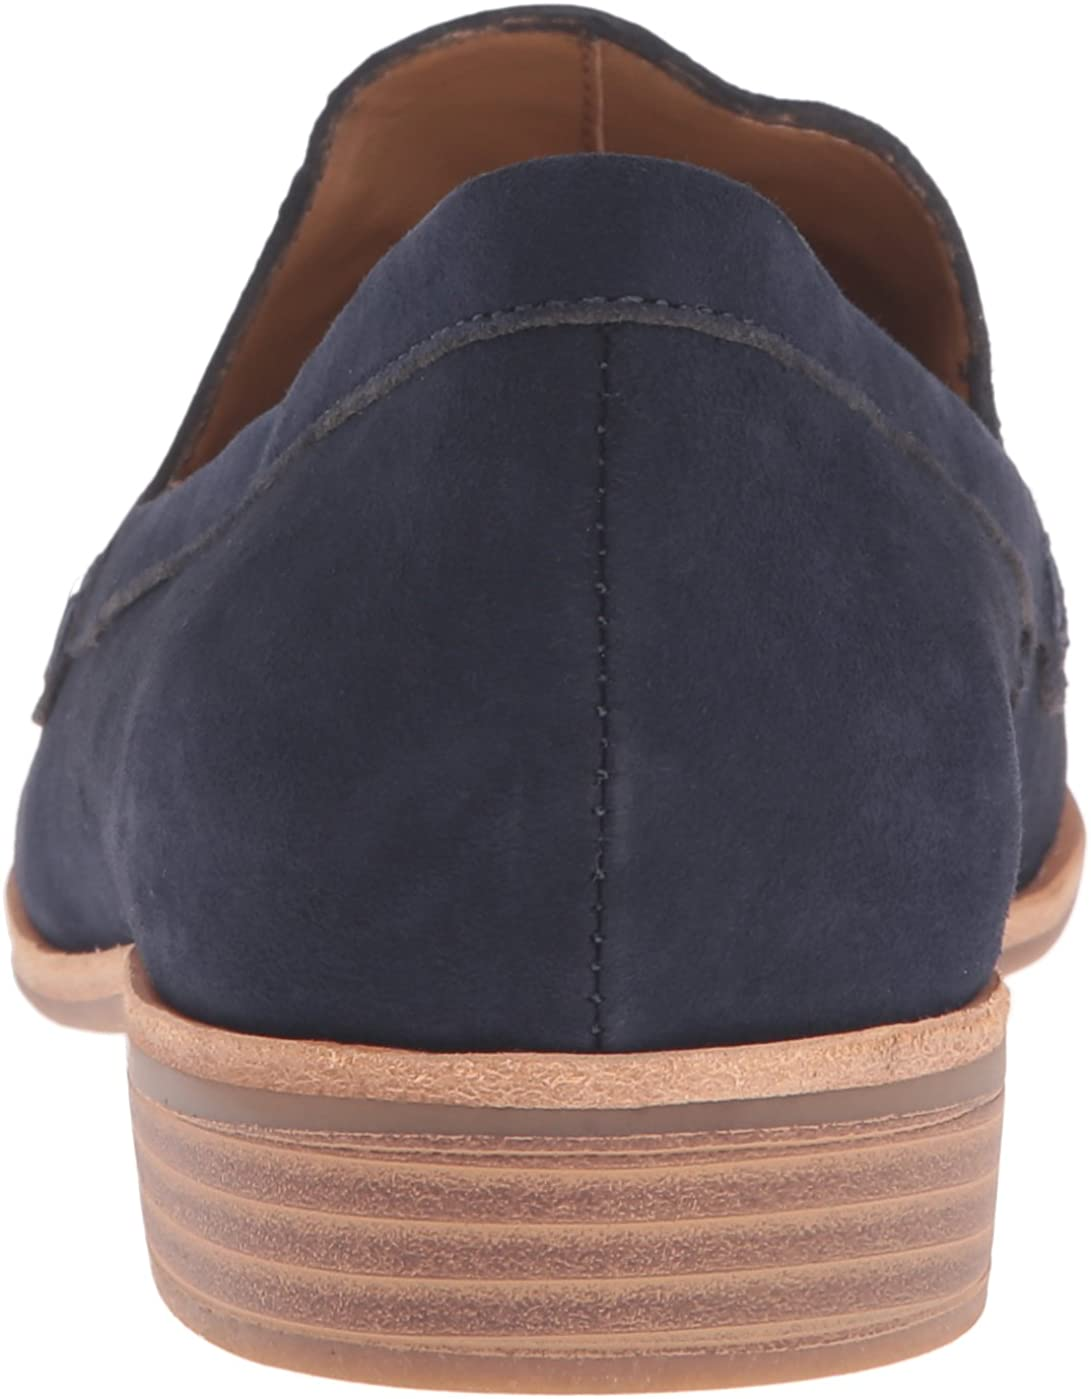 Womens Estelle Pointed Toe Flat Bass /& Co G.H